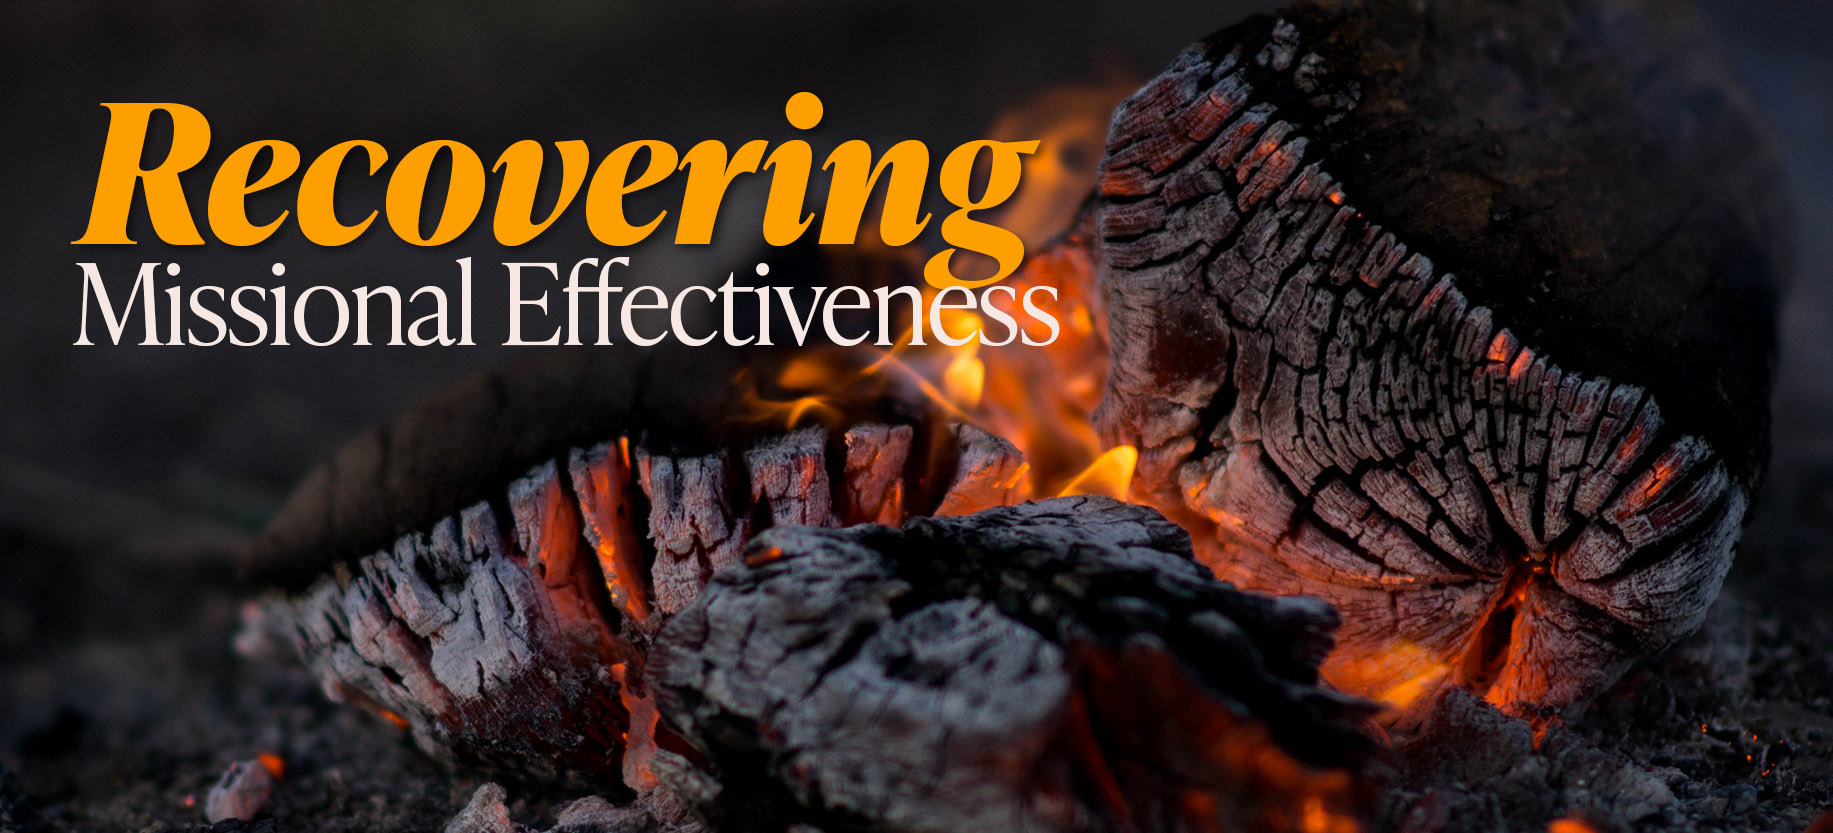 Recovering Missional Effectiveness